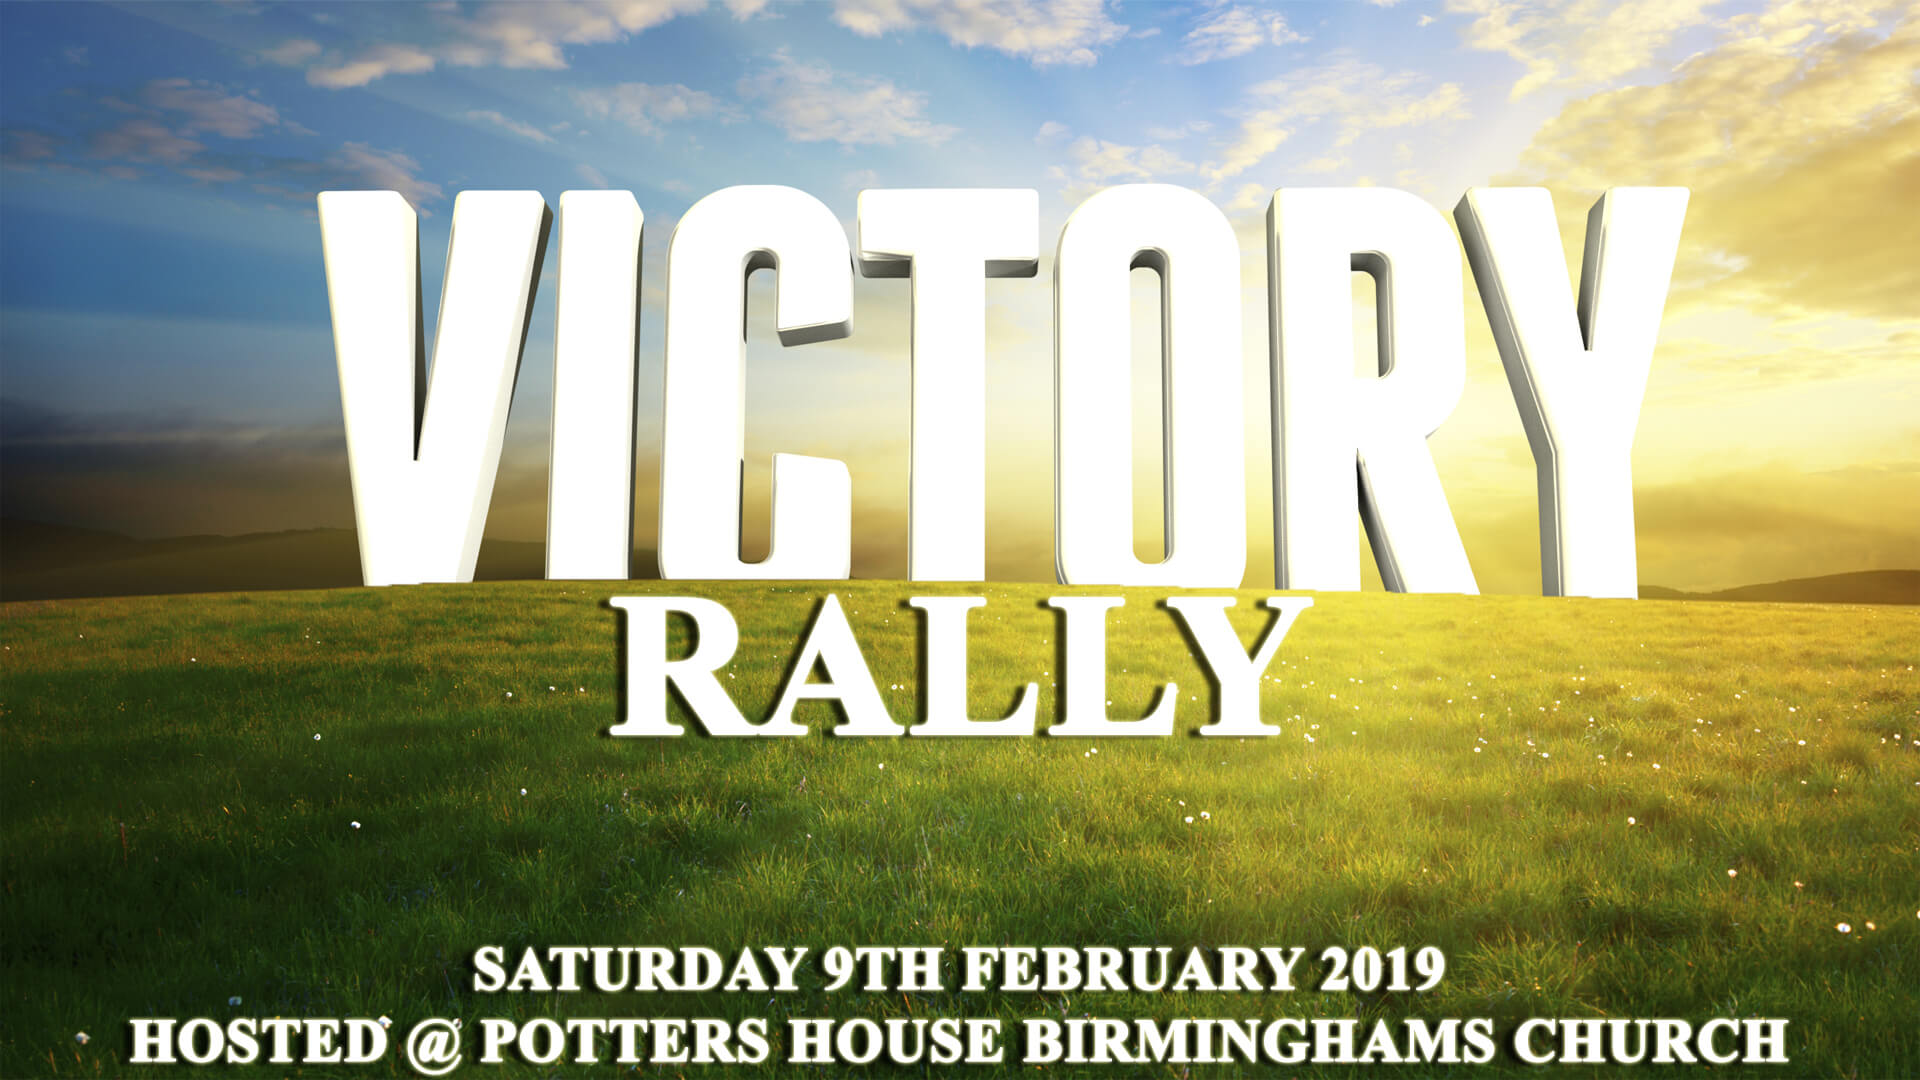 Midlands Victory Rally 2019